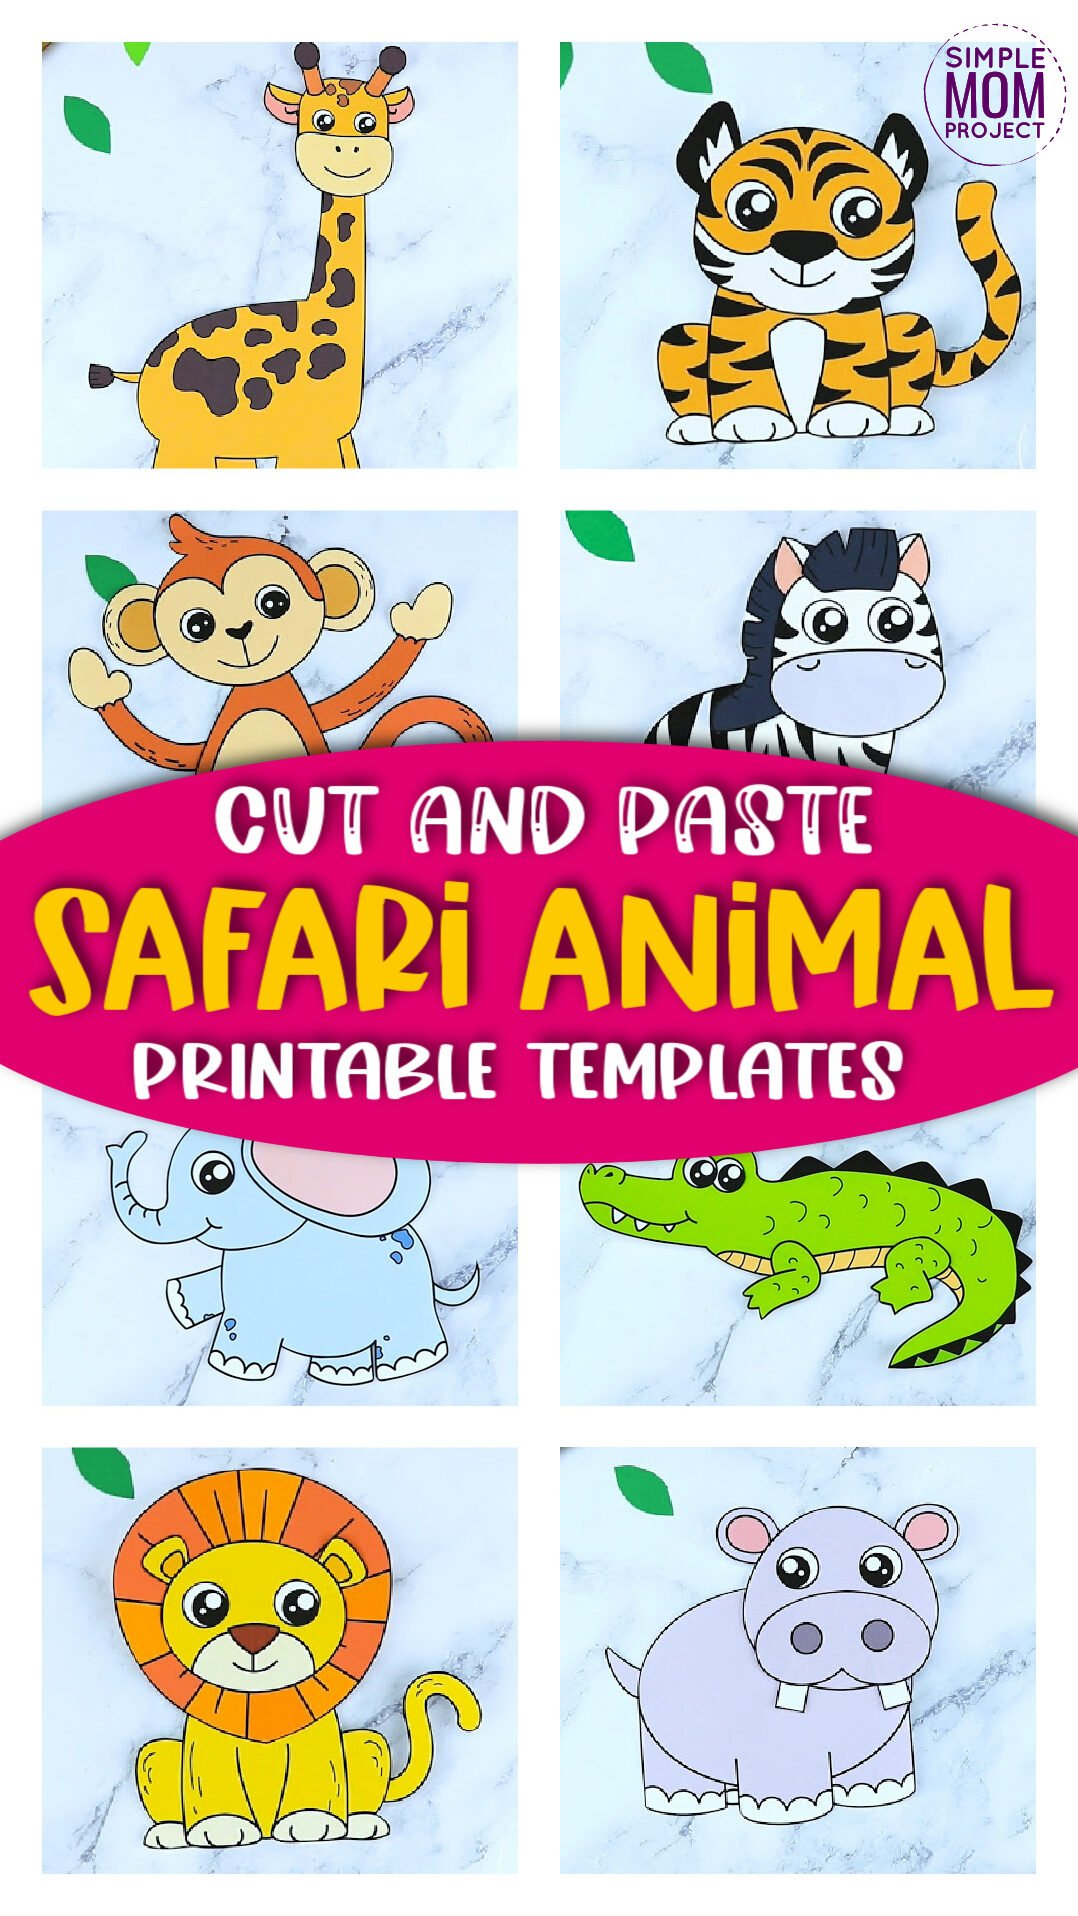 Looking for the best zoo animal character crafts for your kids? These easy jungle animal crafts have fun cut and paste templates to keep toddlers, preschoolers or even big kids amused for hours. Including our popular lion craft, zebra craft and tiger crafts and many more these are sure to be a big hit with your kids for fun craft activities or even homeschooling lessons. Click here to grab these awesome safari animal character craft templates today.